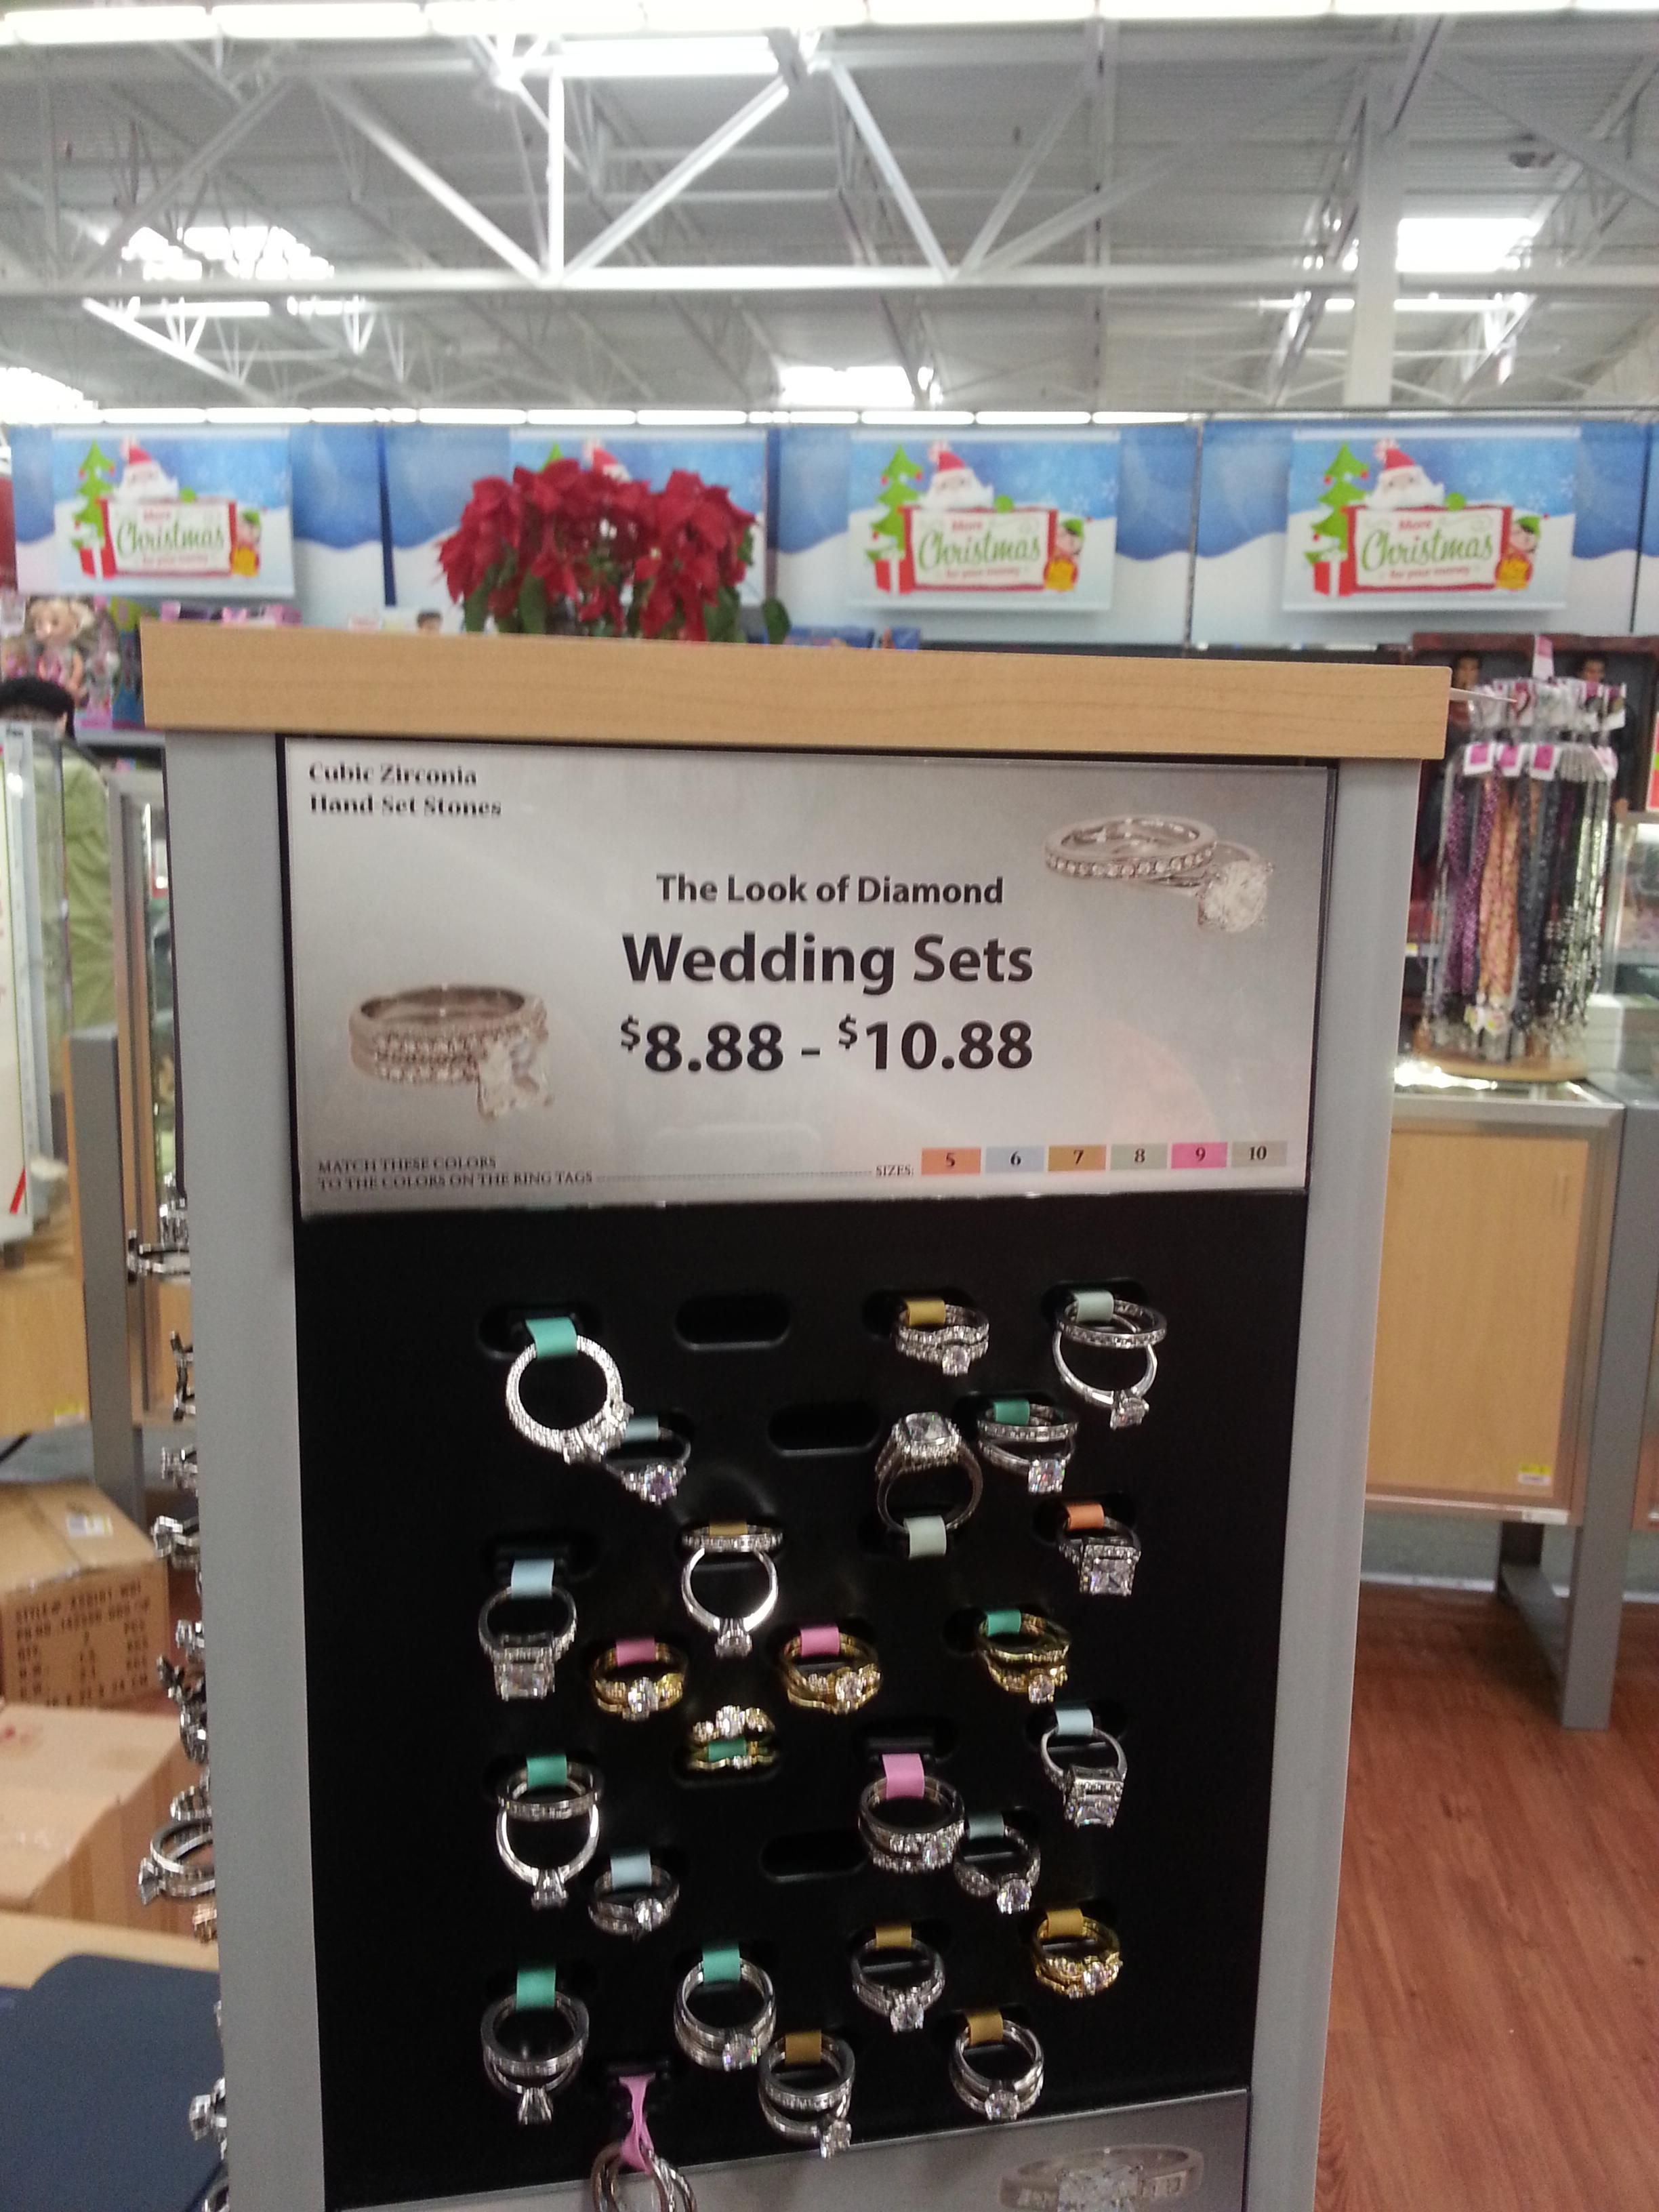 explore wedding sets wedding ring set and more - Walmart Wedding Ring Sets